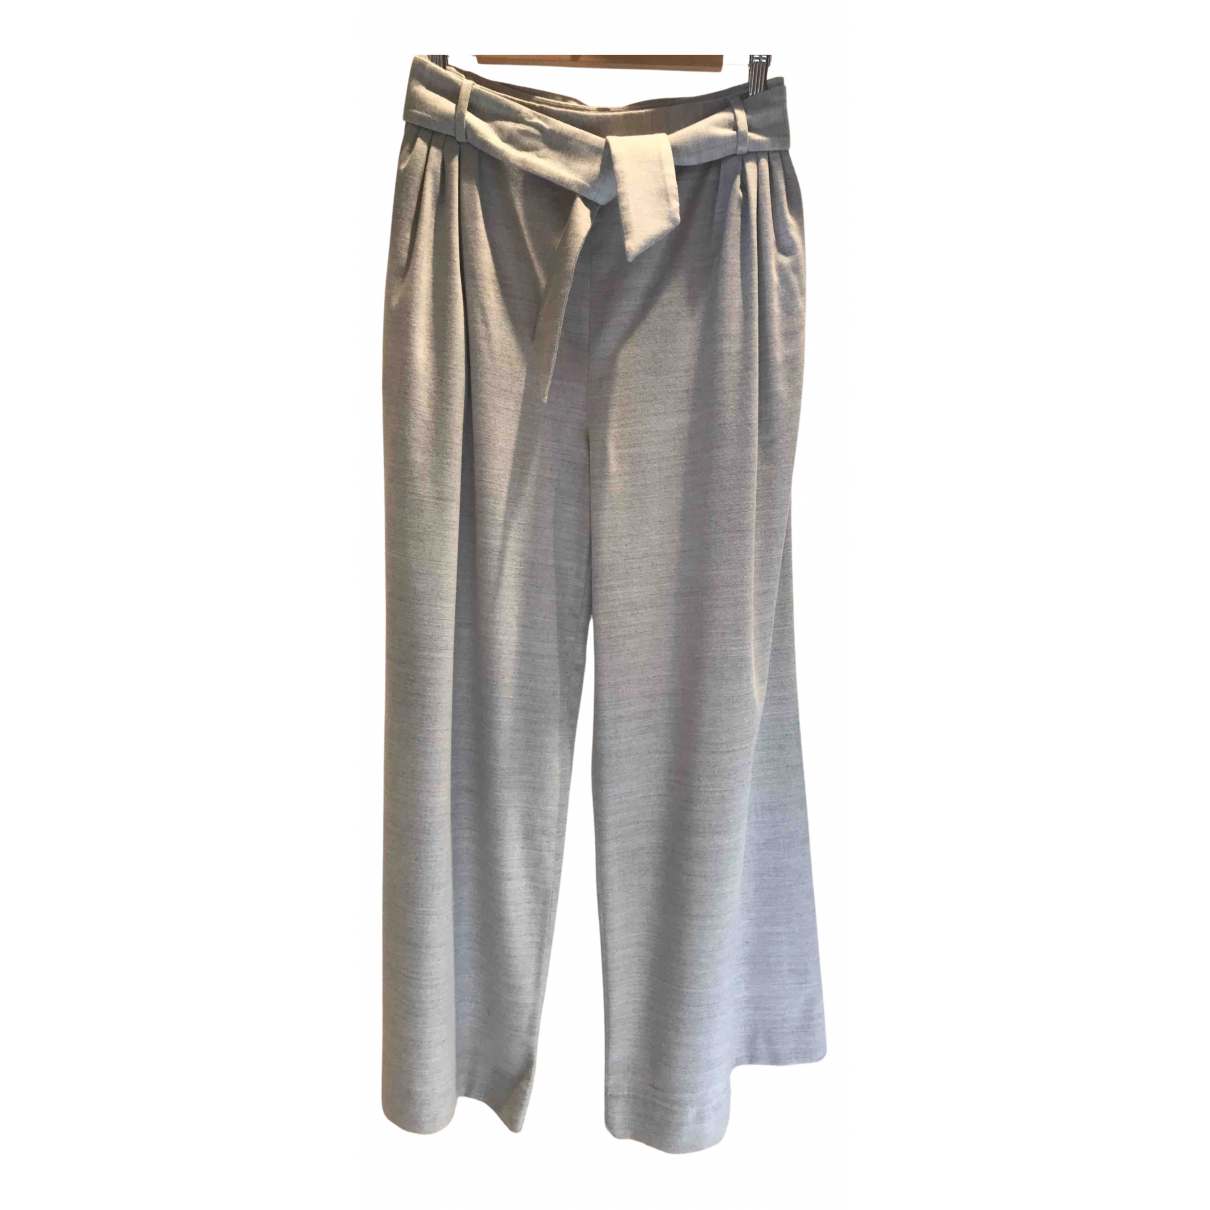 Fabiana Filippi N Grey Wool Trousers for Women 38 IT